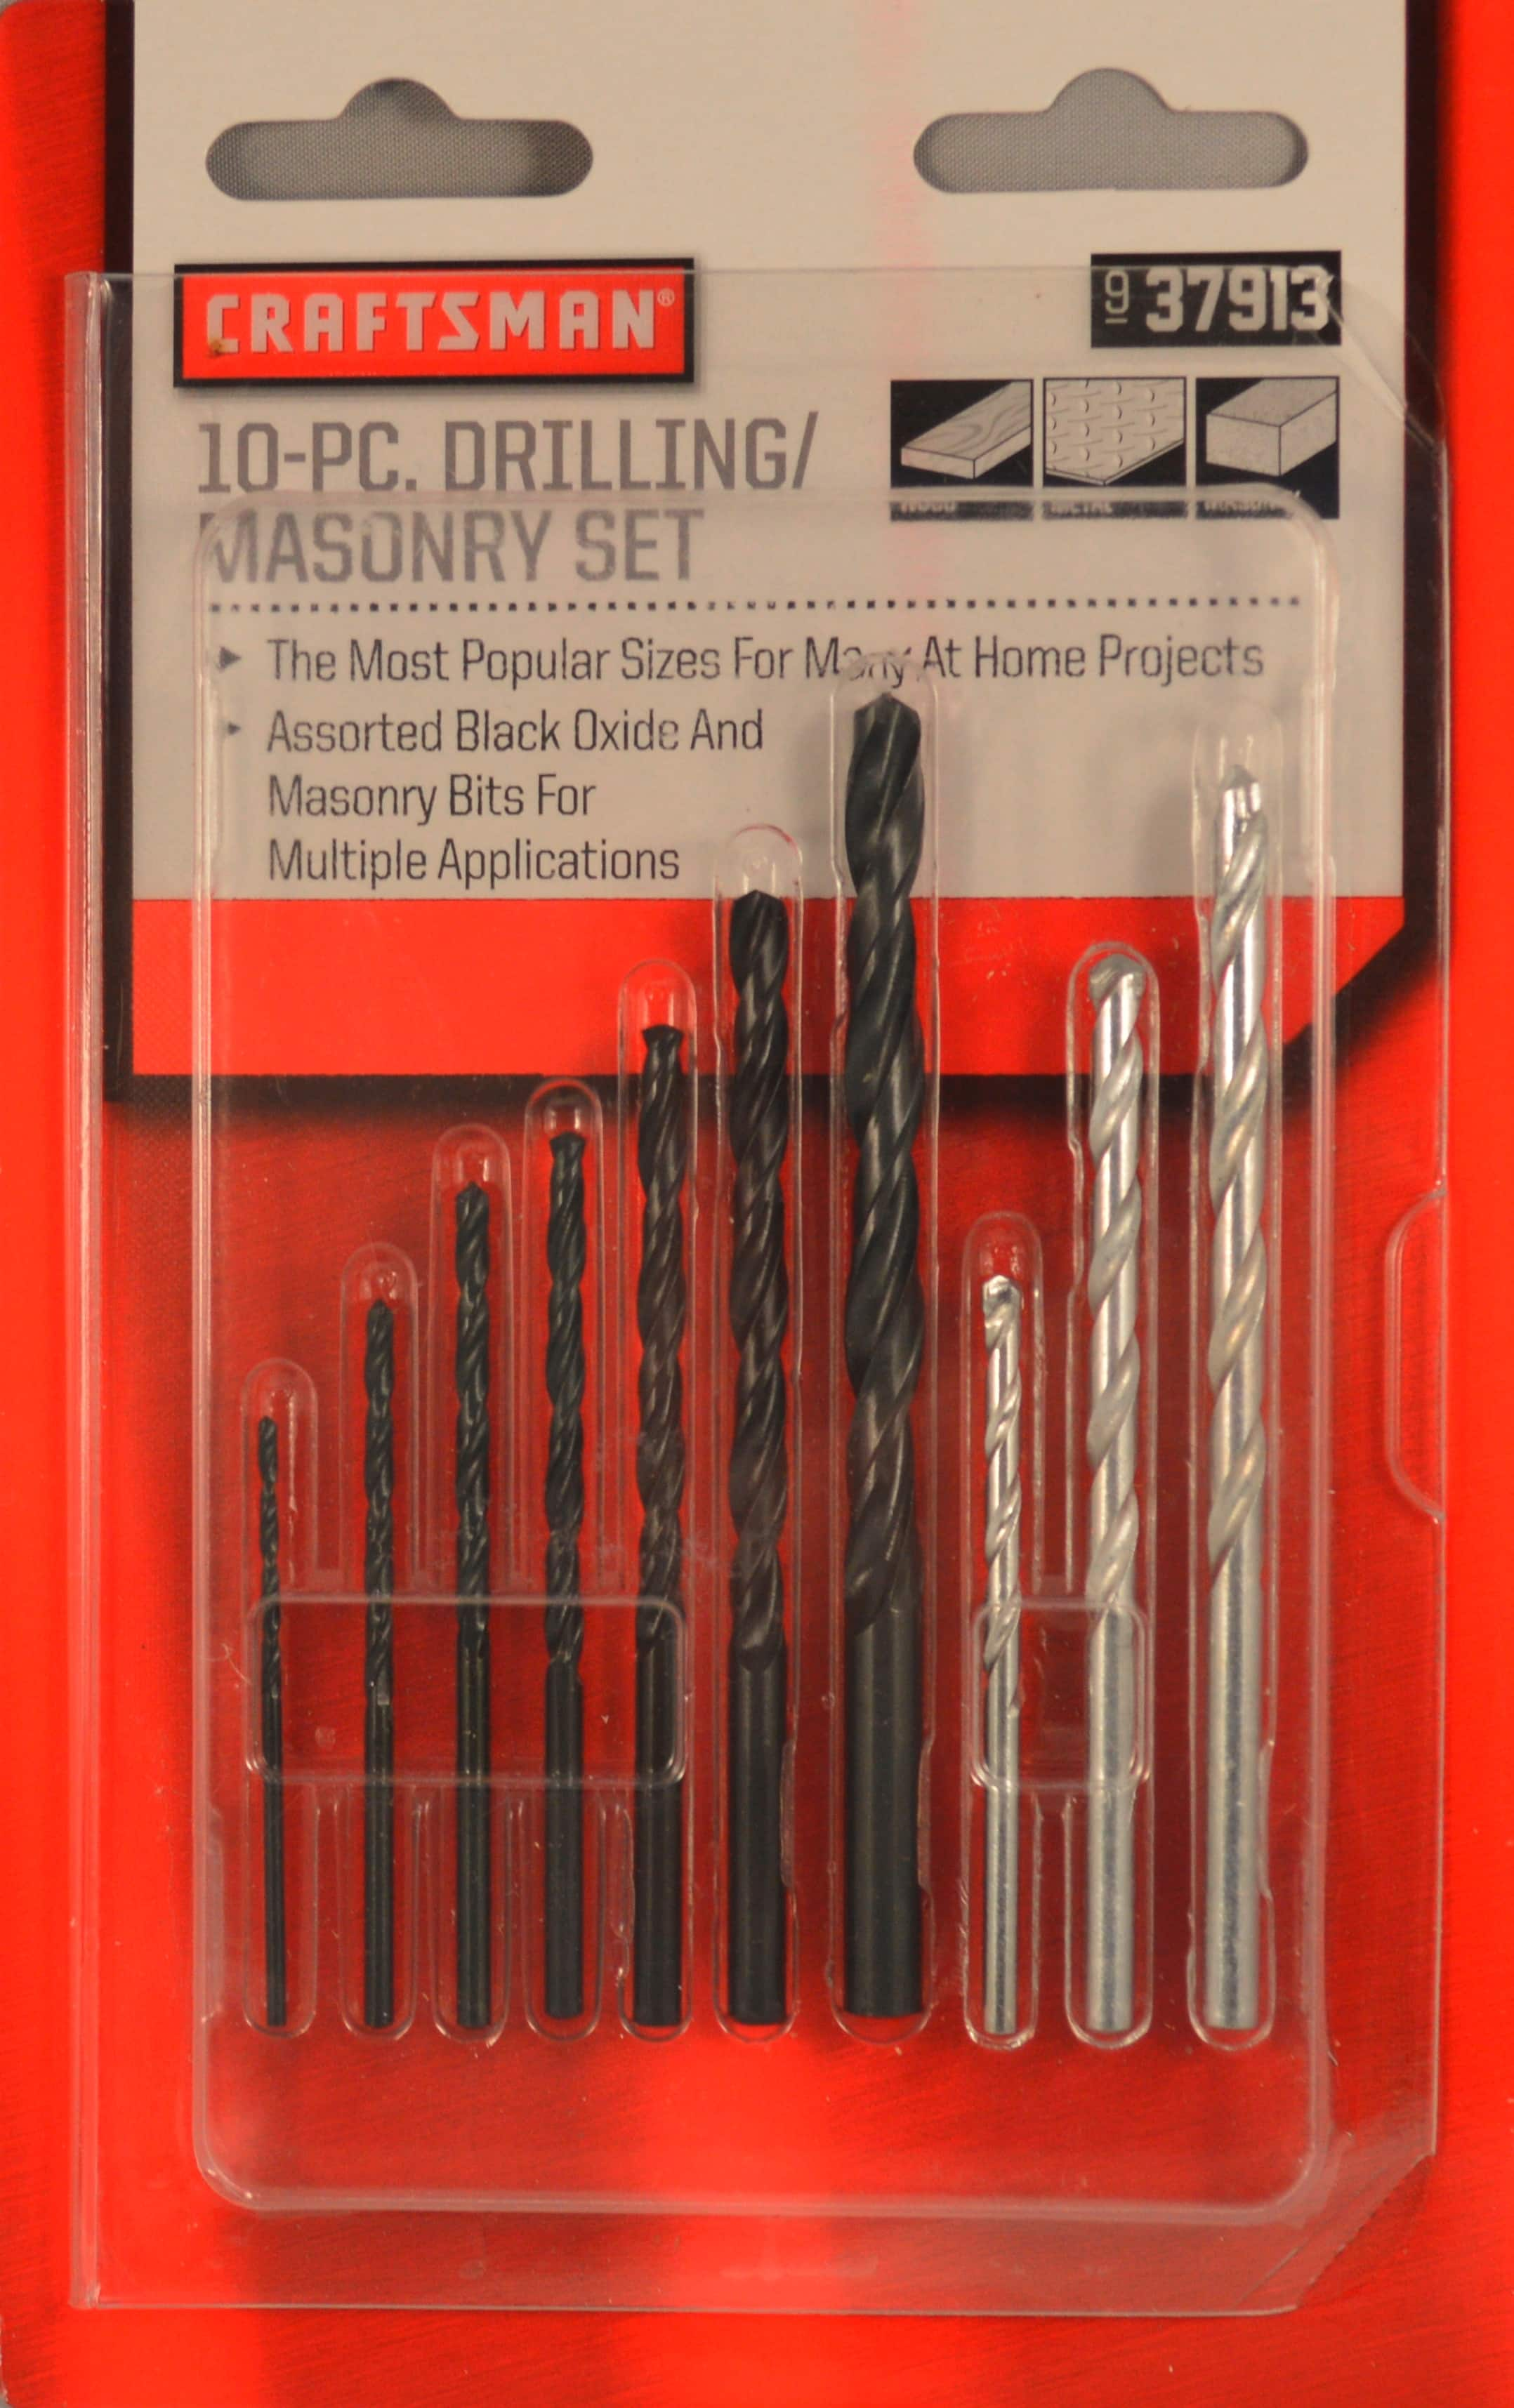 Kmart - Craftsman 10 Piece Drilling Masonry Bit Set + $4 SYW Points = $4.99 (Free in store pick up) + More Tools Included in $4 SYWR Promo!